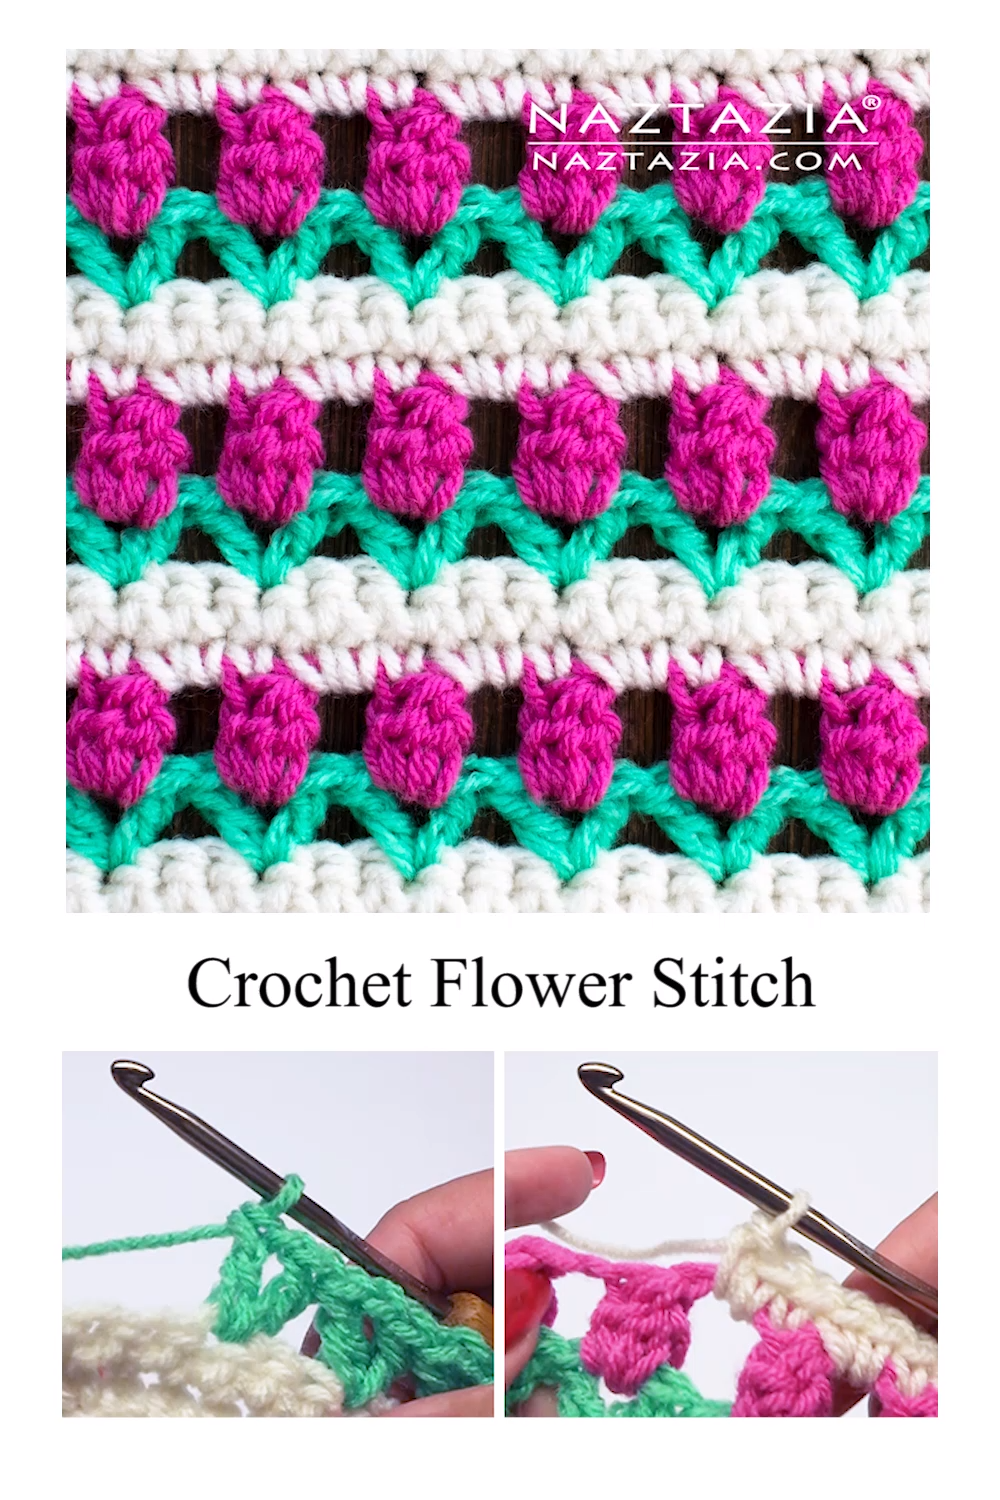 Crochet Flower Stitch #crochetstitches